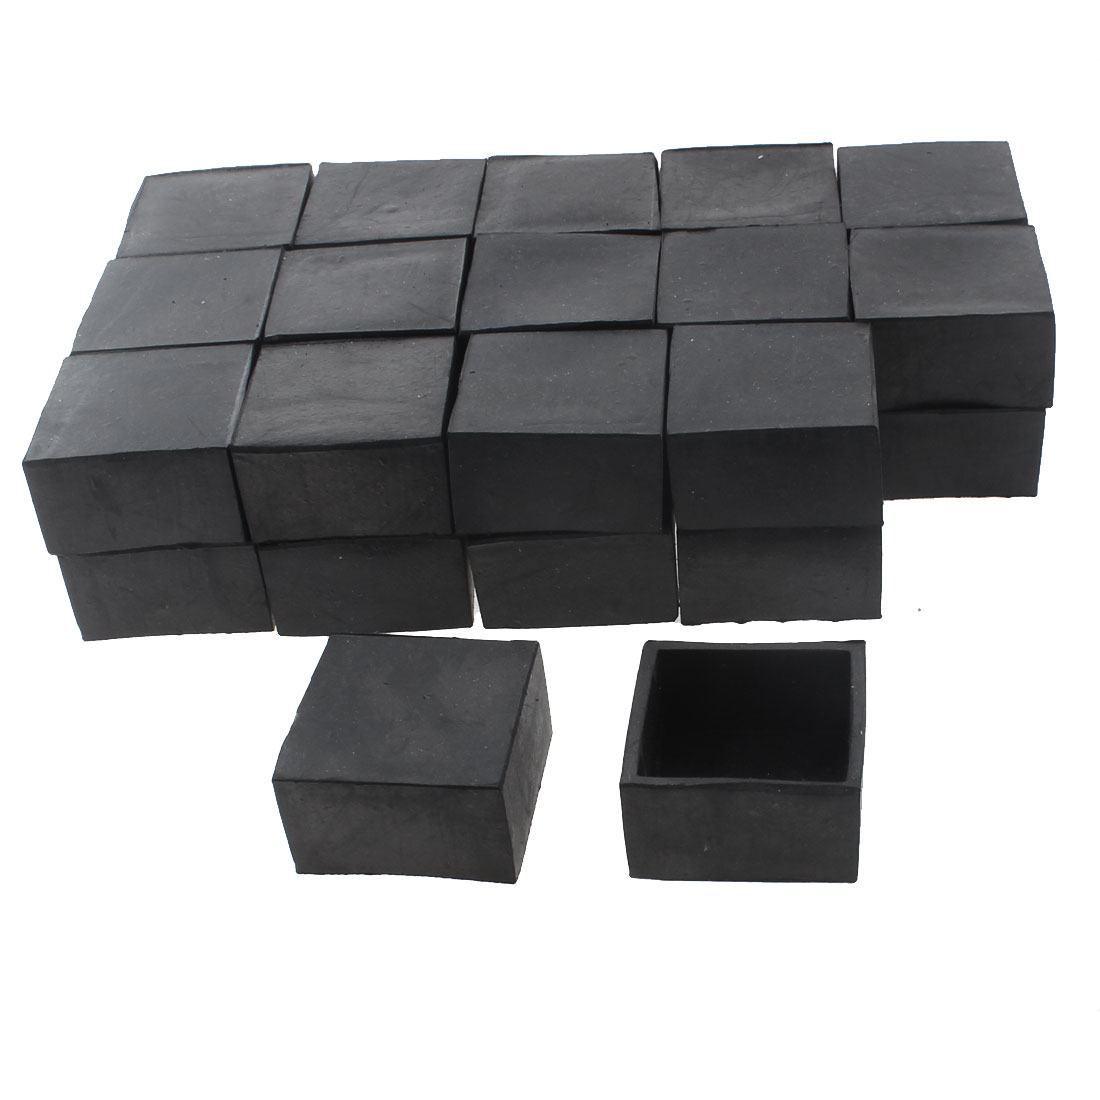 40mm x 40mm Square Shaped Furniture Table Chair Foot Leg Rubber End Cap Cover Black 30pcs